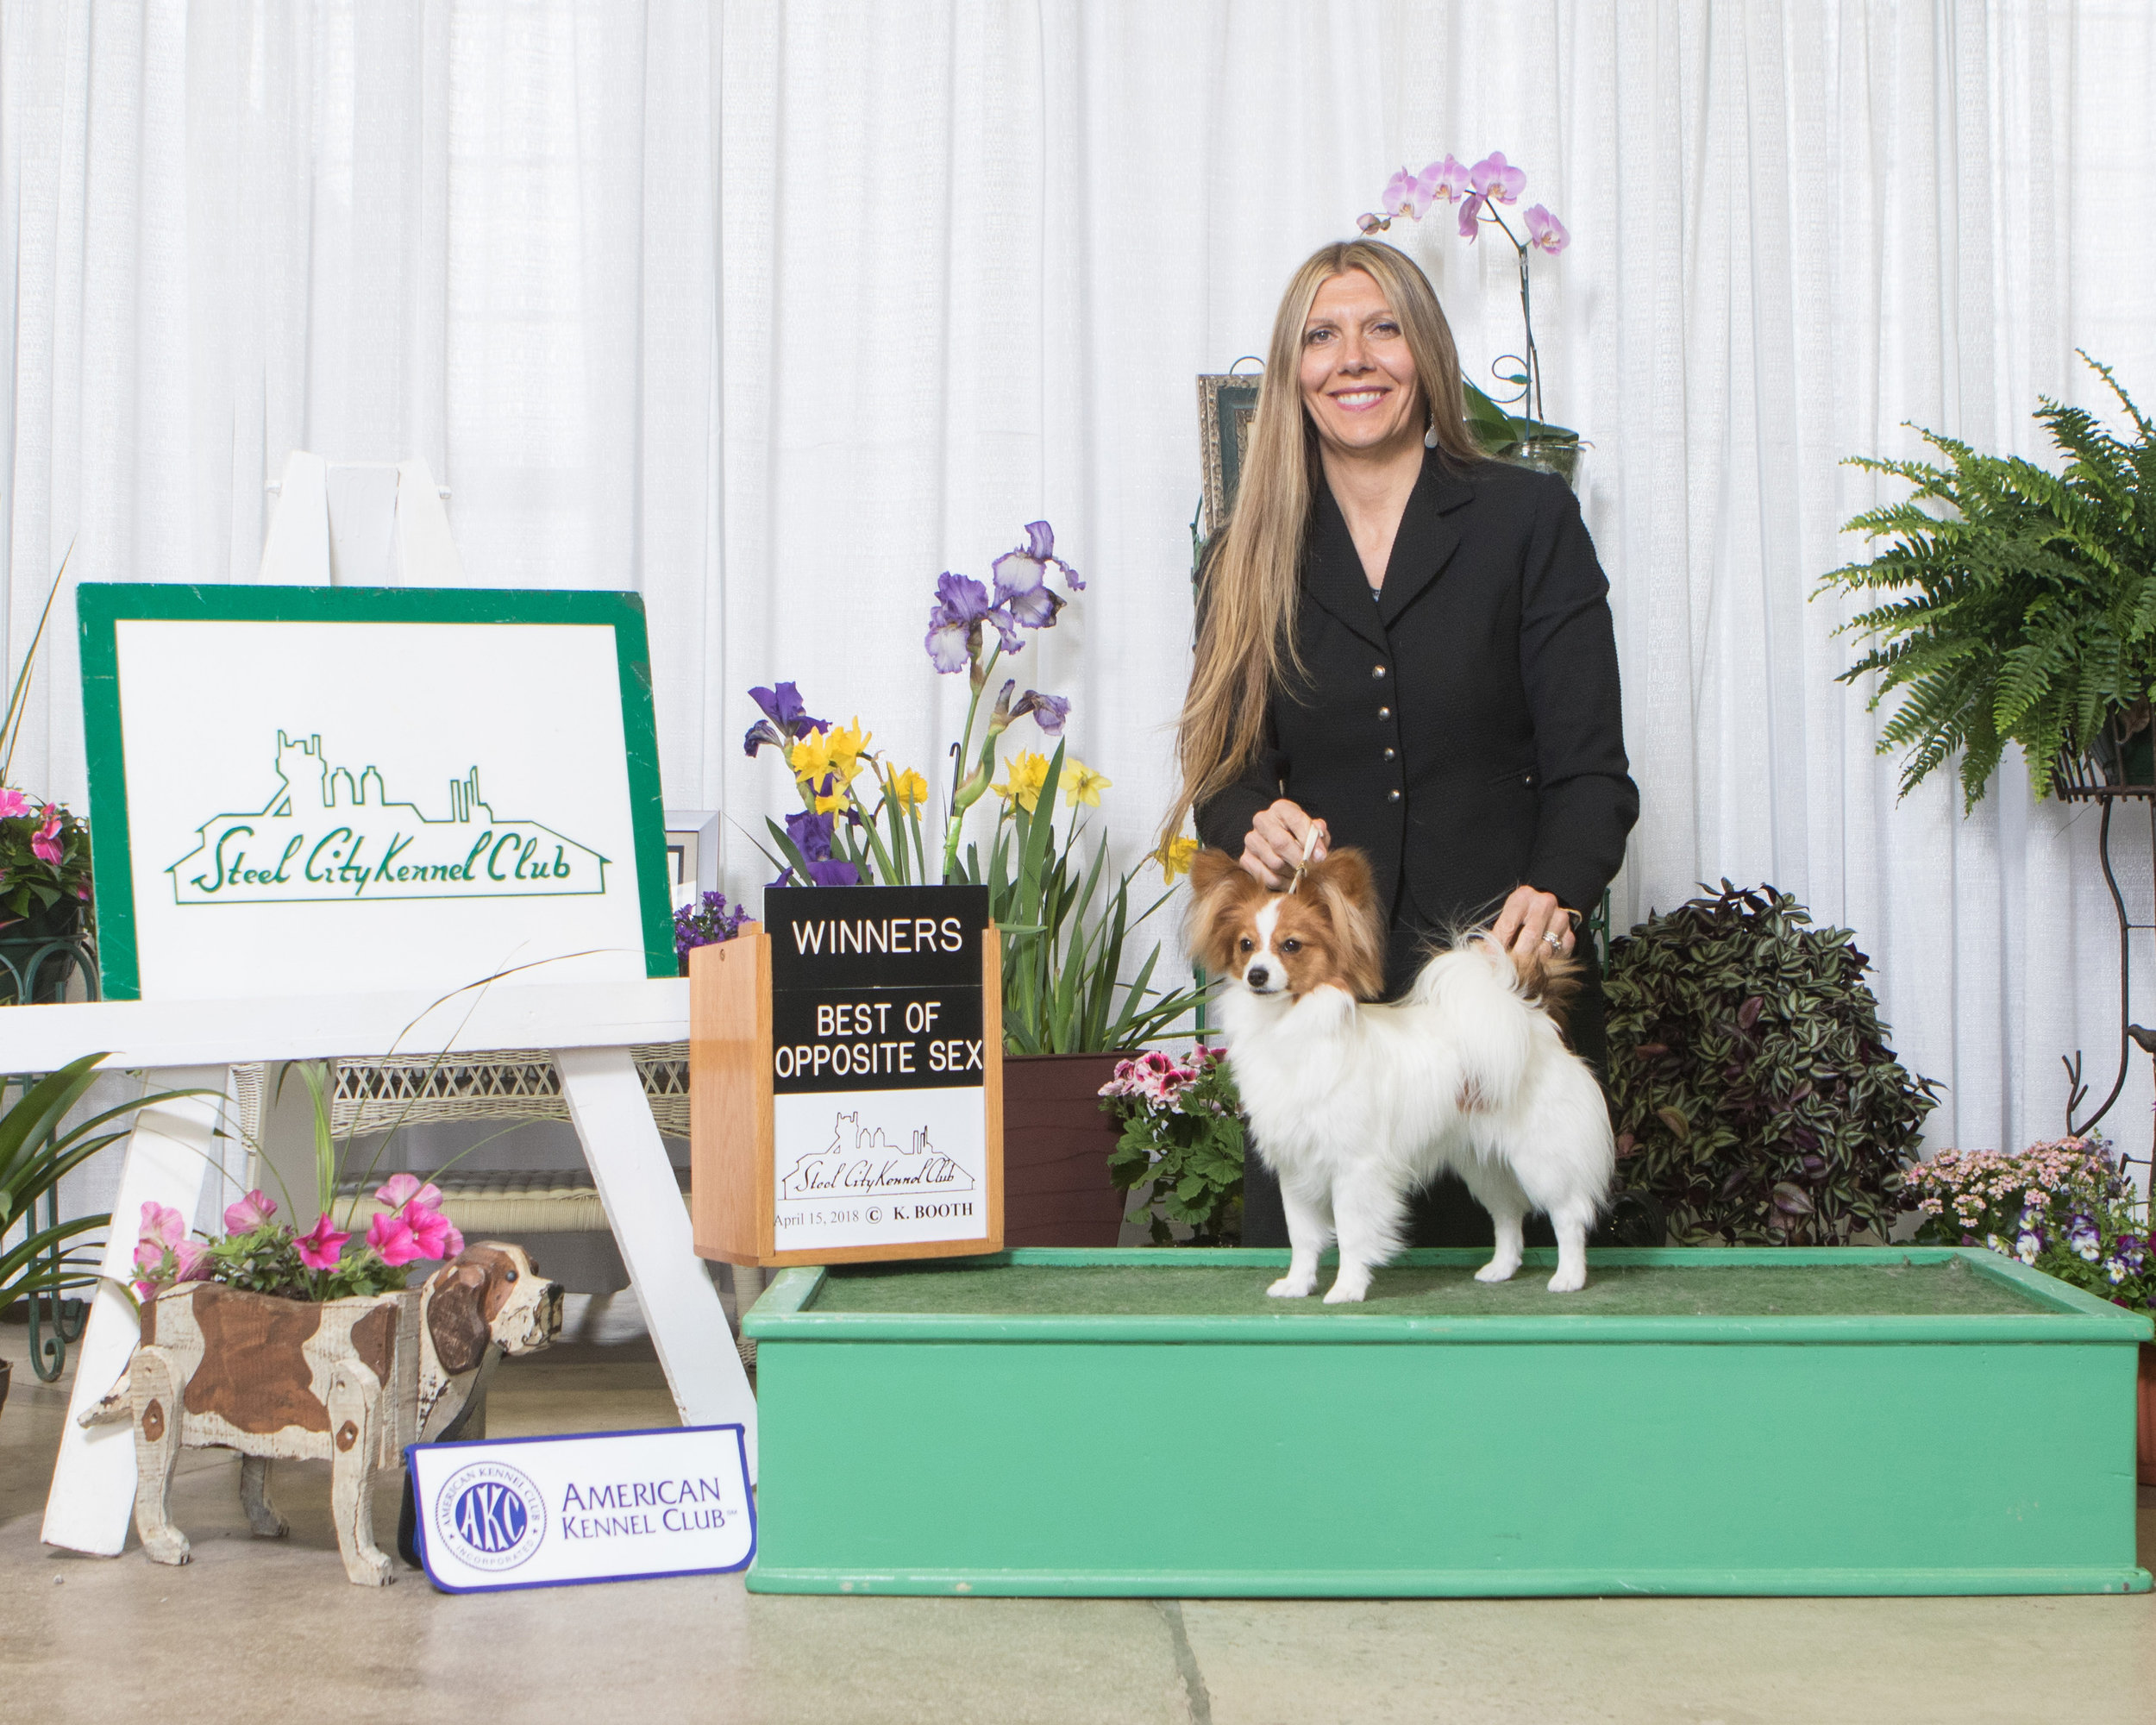 Star at the Steel City Kennel Club Dog Show, 4/15/18. Thank you Norma Smith for handling her!